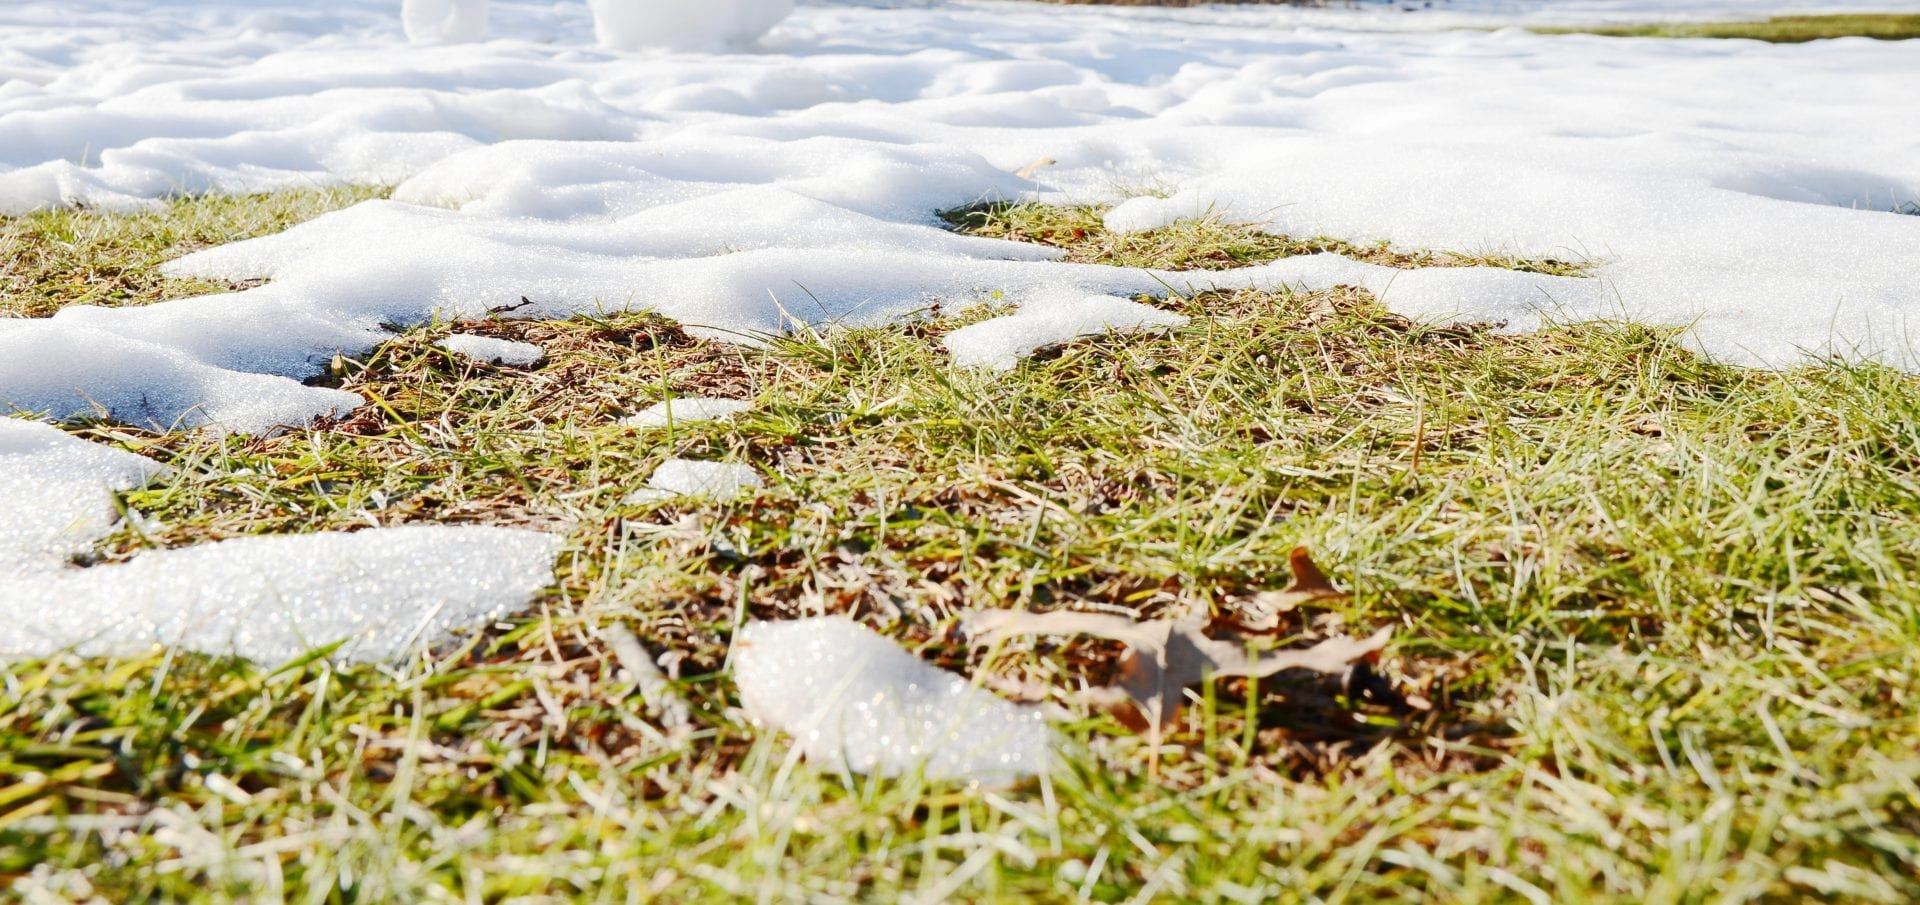 Caring For Your Lawn In Winter | Blog | Front Range Arborists